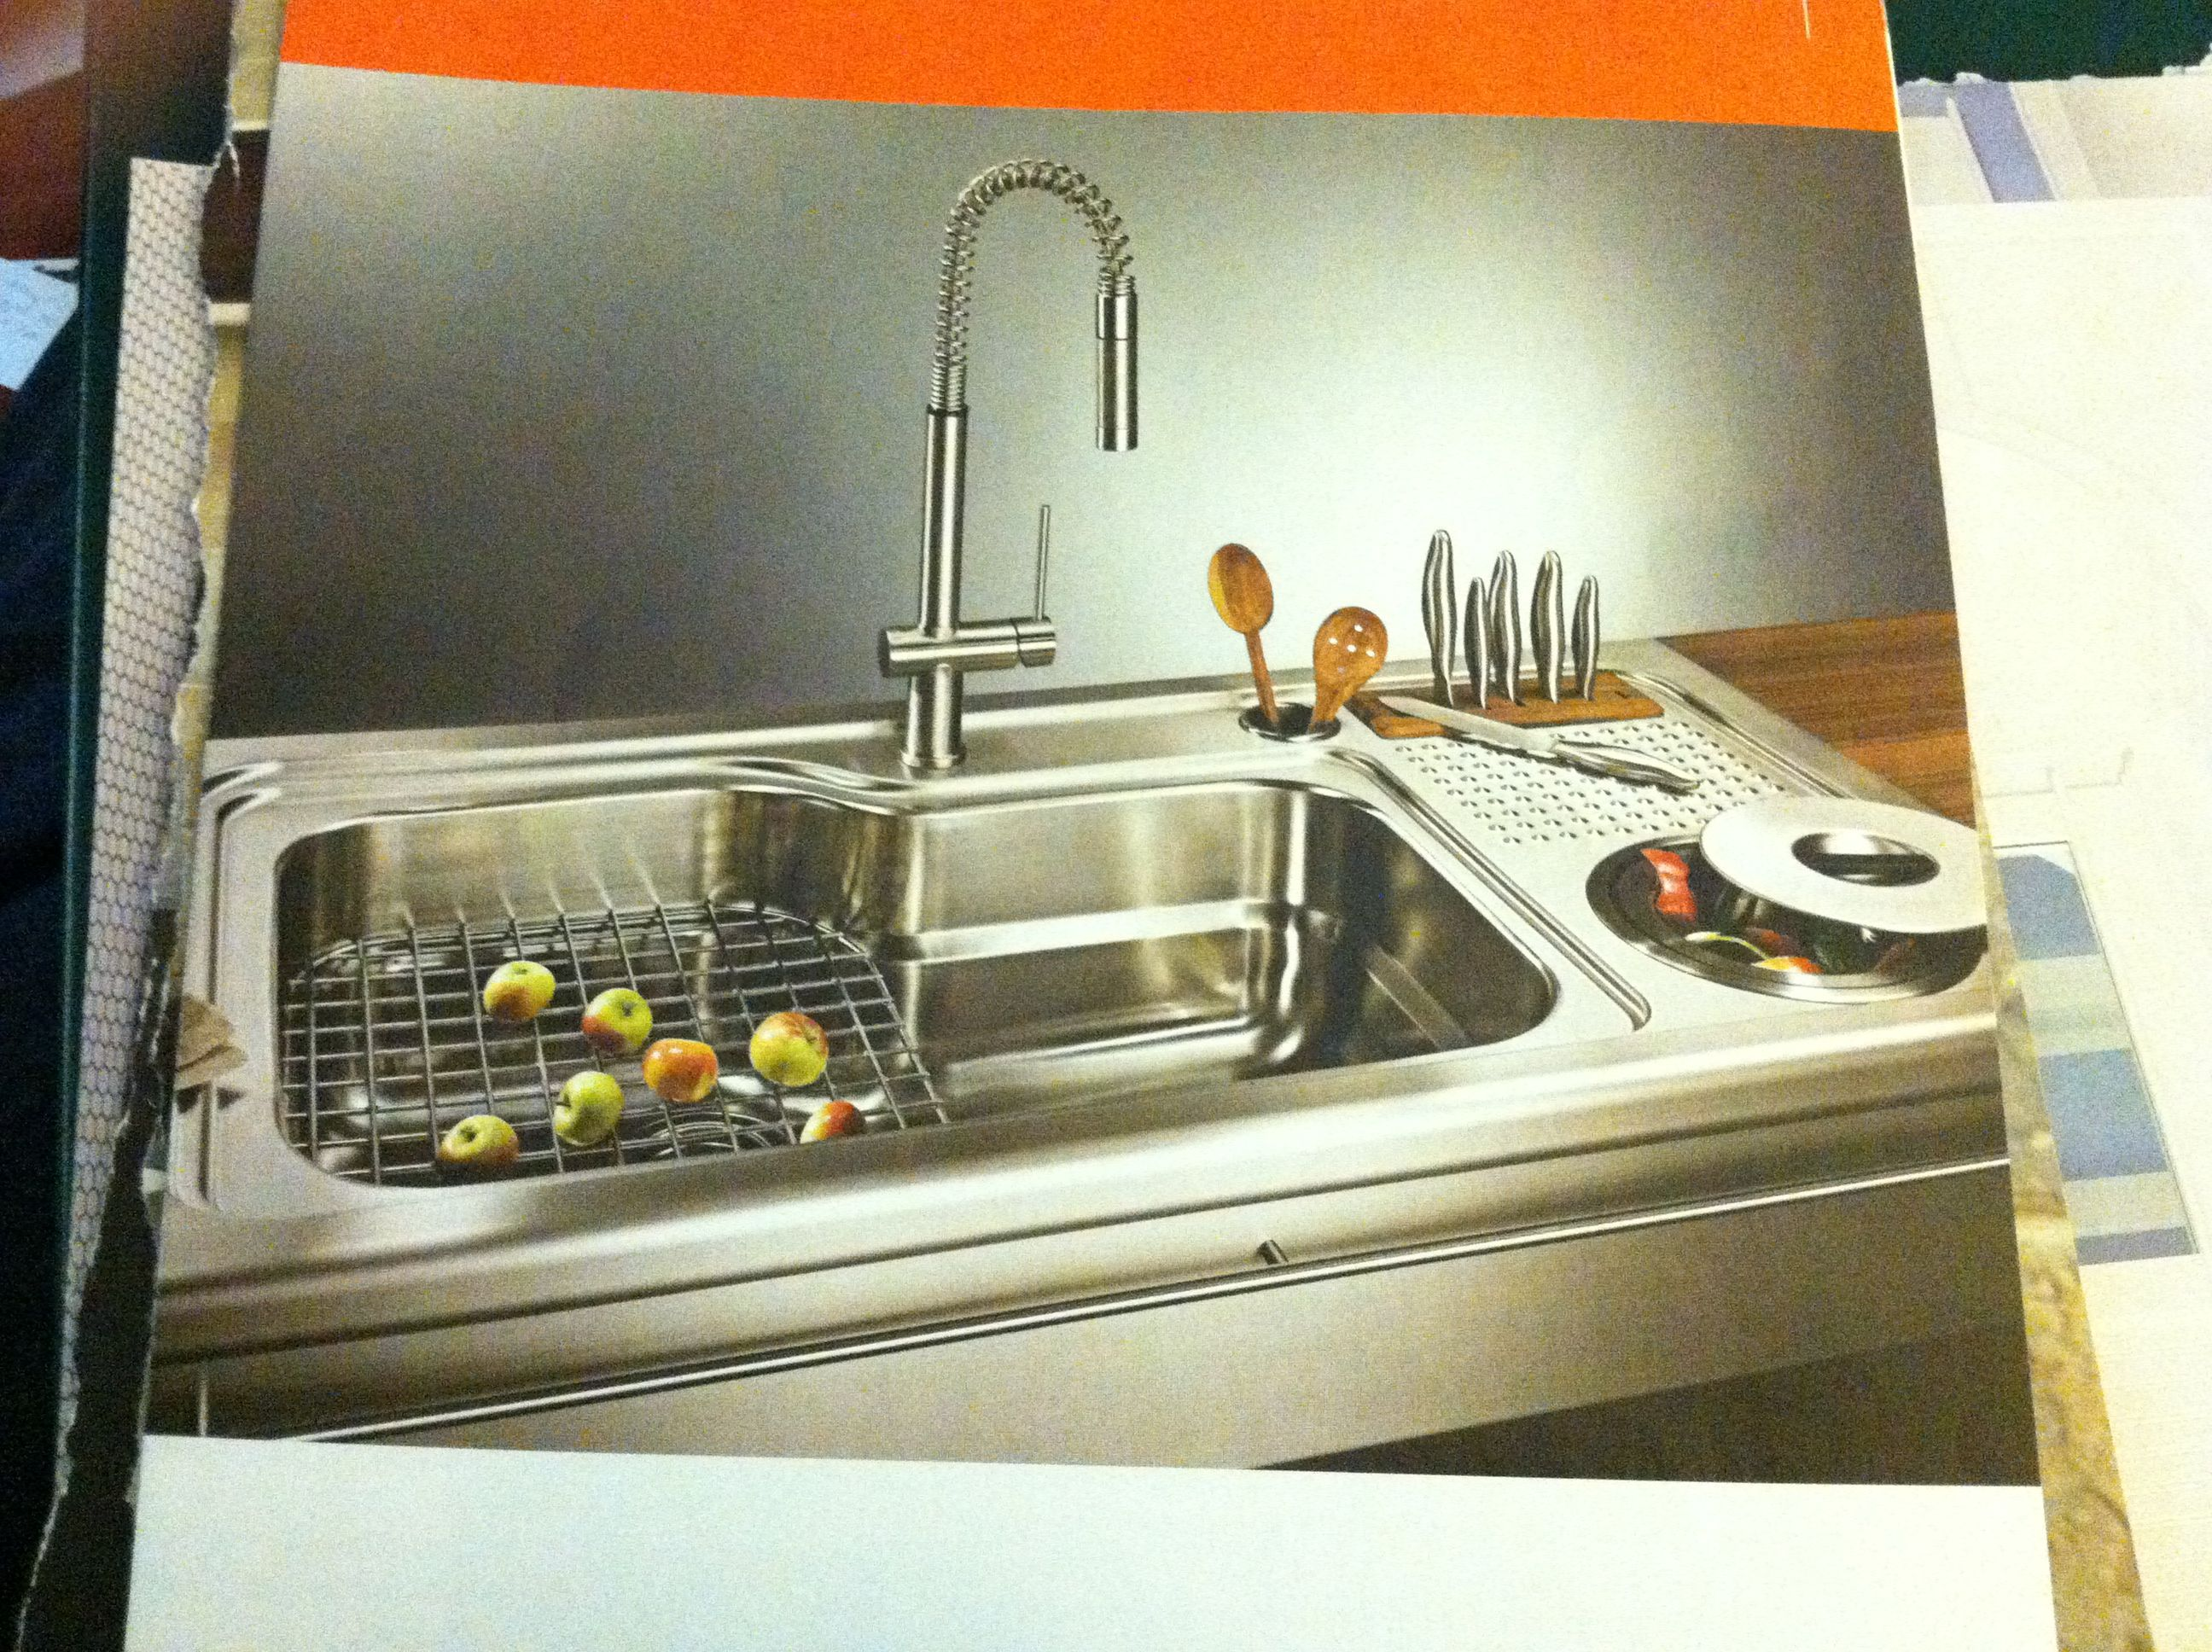 Professional grade sink from franke (frankeconsumerproducts.com)